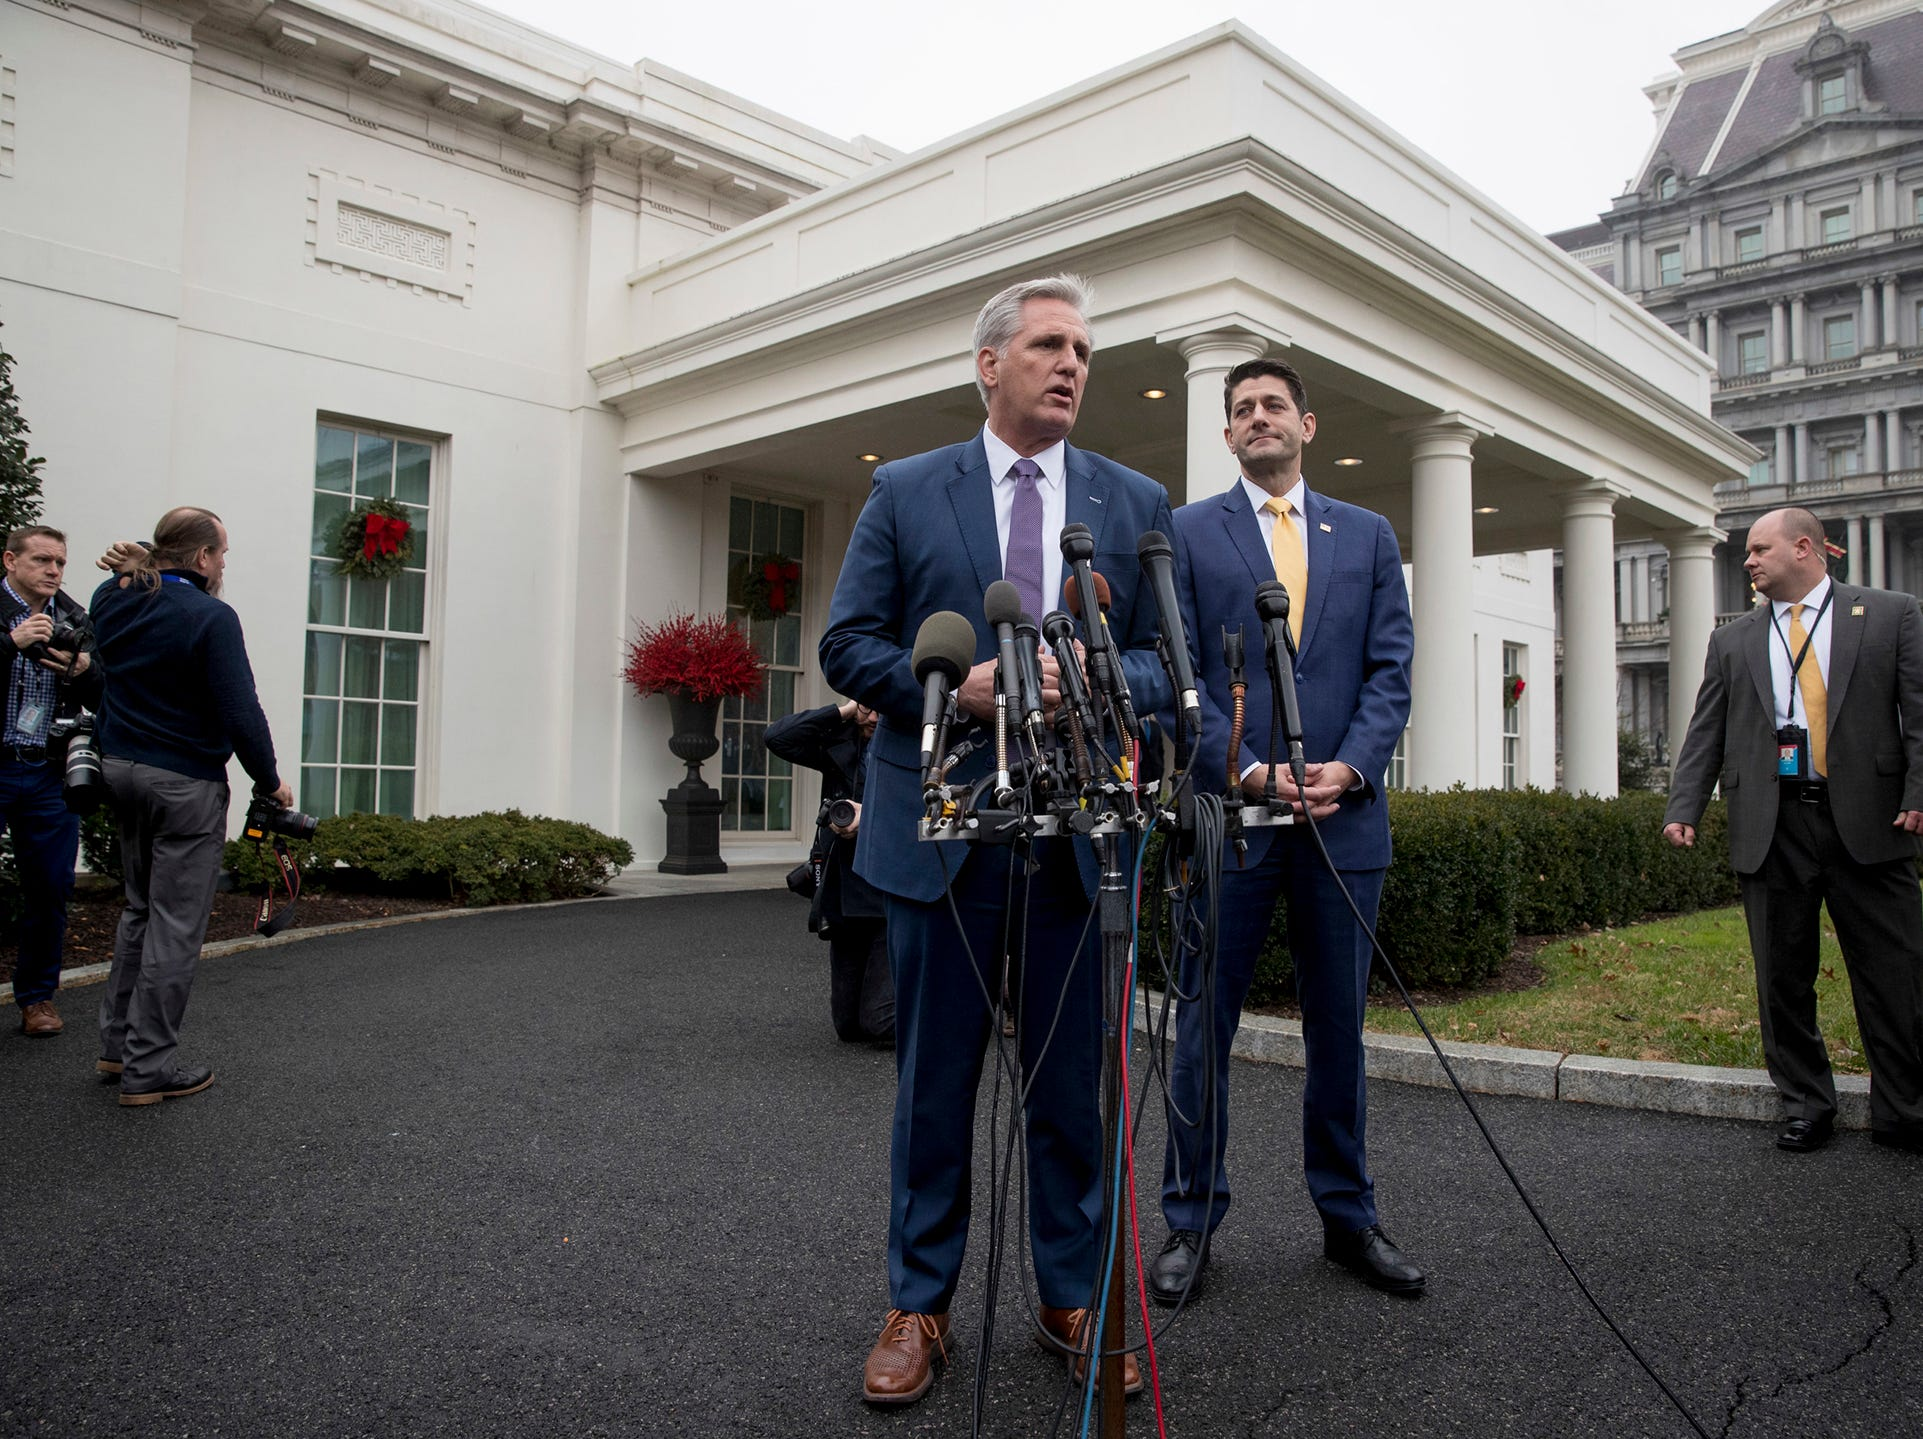 House Majority Leader Kevin McCarthy of Calif., center, accompanied by House Speaker Paul Ryan of Wis., center right, speaks to reporters outside the West Wing of the White House following a meeting with President Donald Trump on border security.